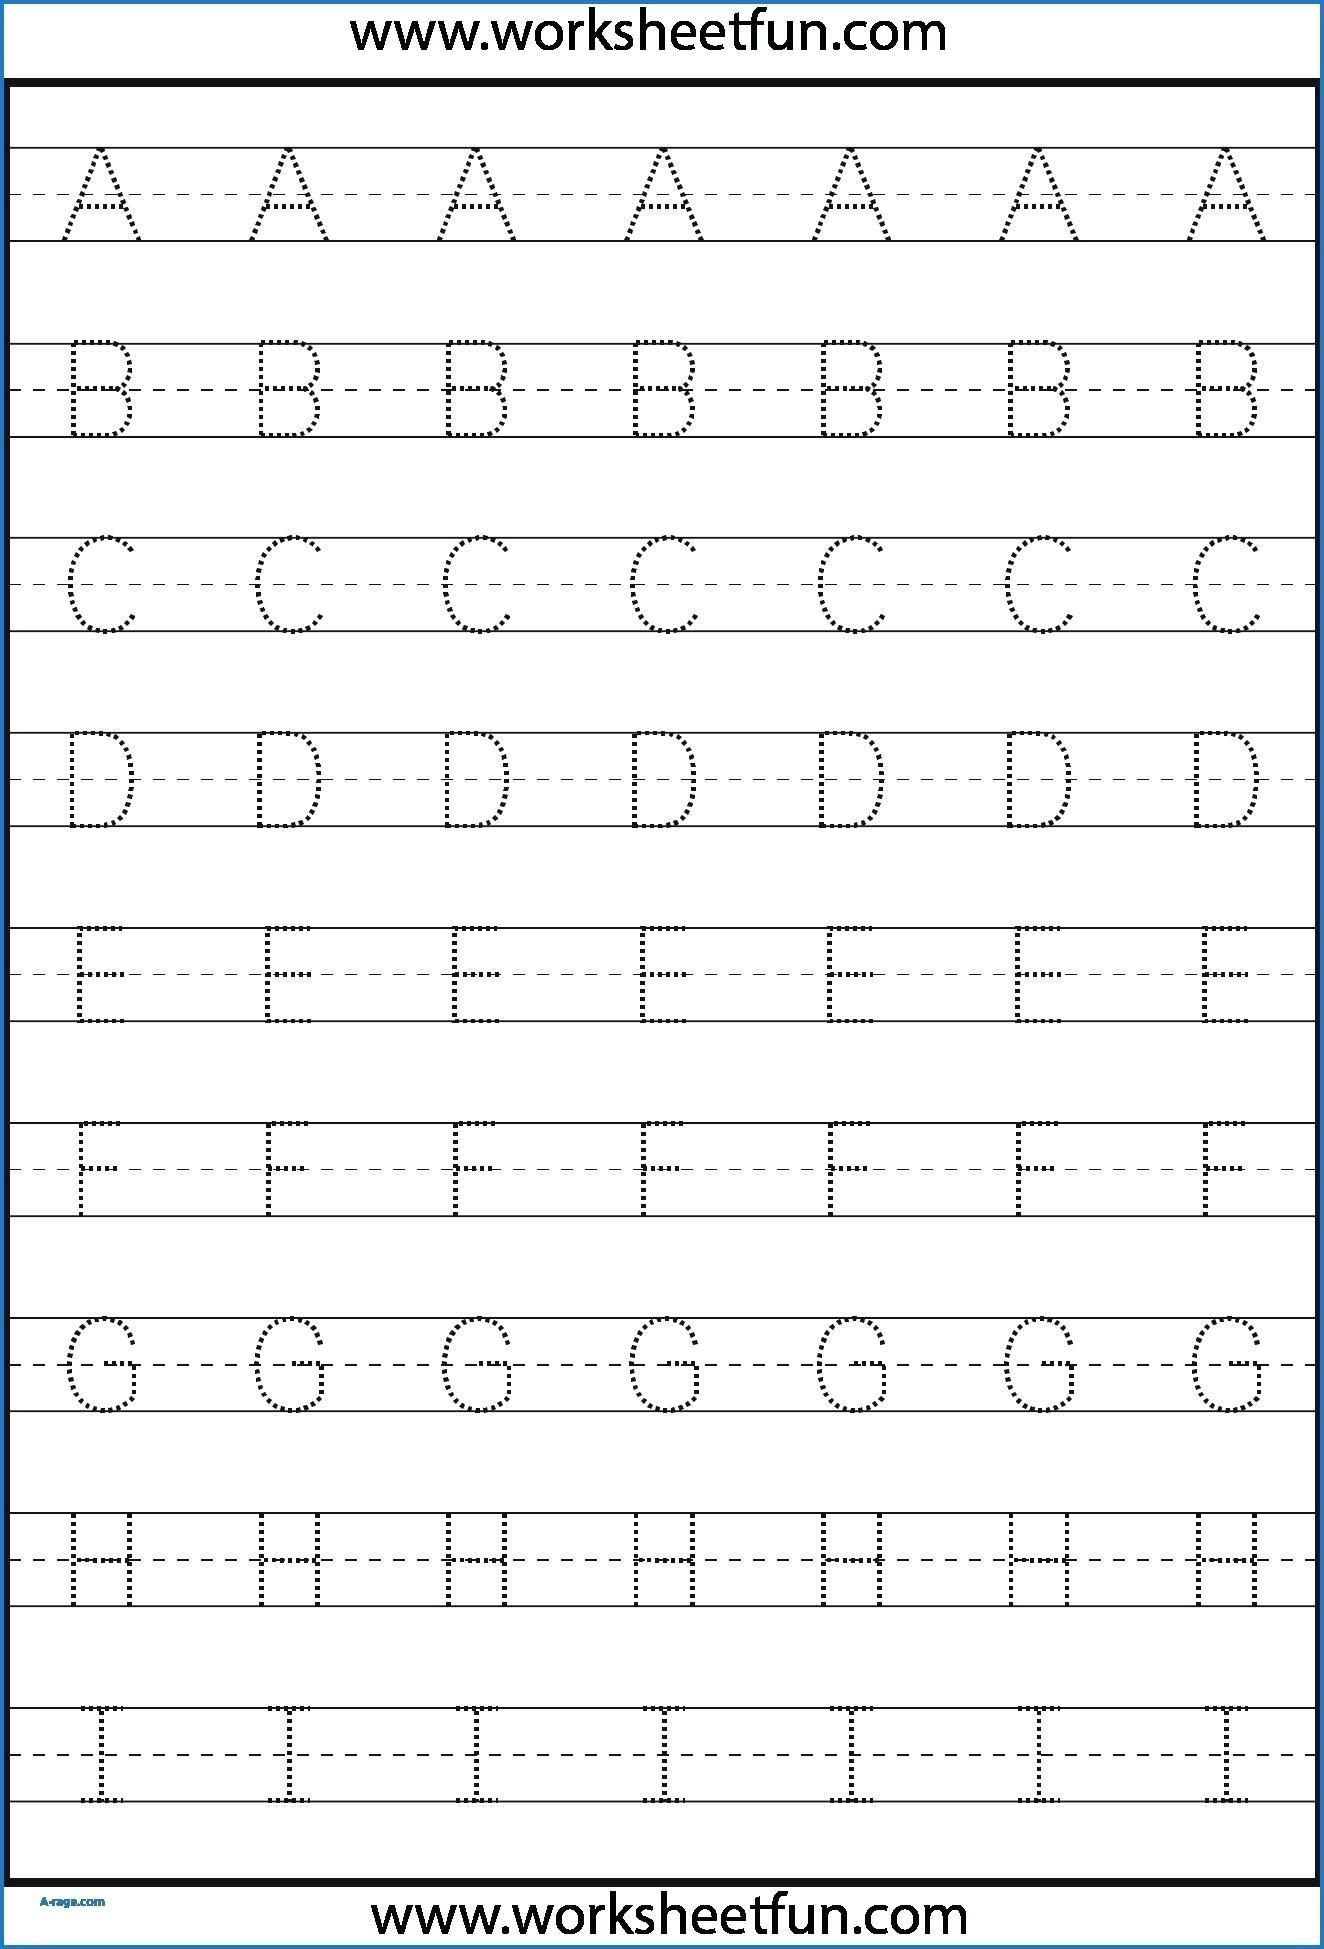 Kindergarten Letter Tracing Worksheets Pdf - Wallpaper Image with Free Printable Letters And Numbers Tracing